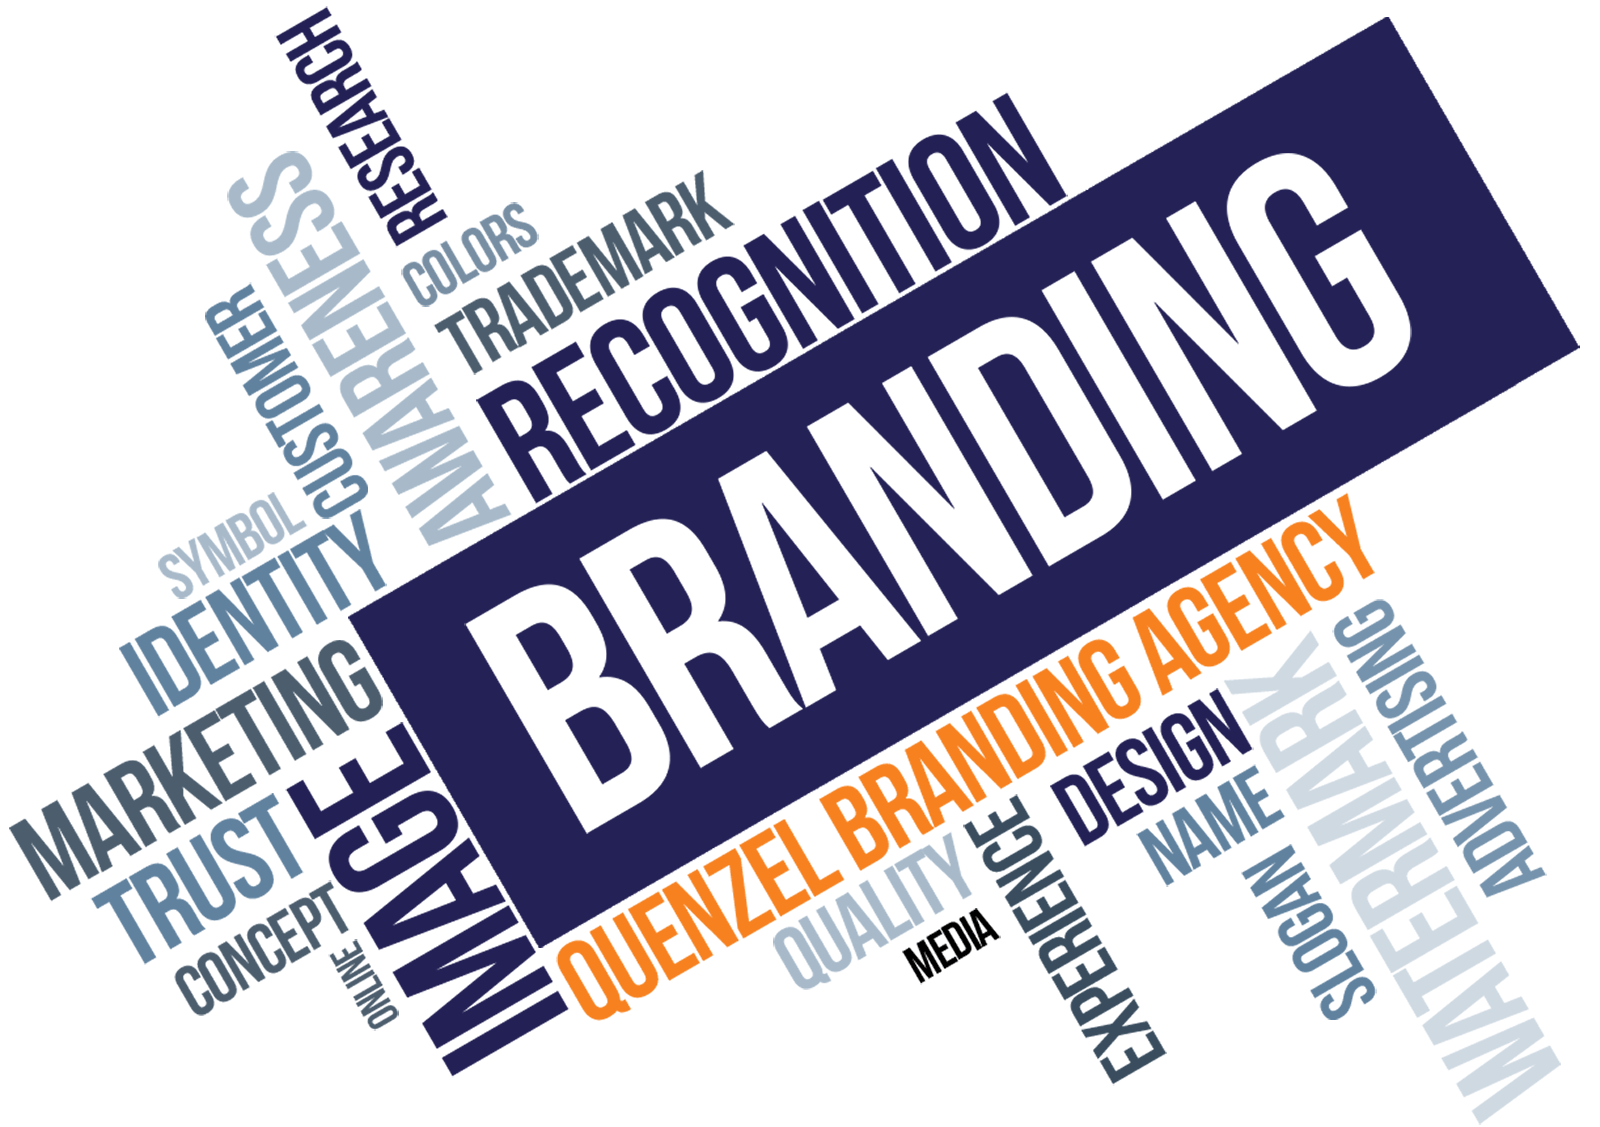 A Proper Reputation Management Campaign Is the Key to Efficient Branding